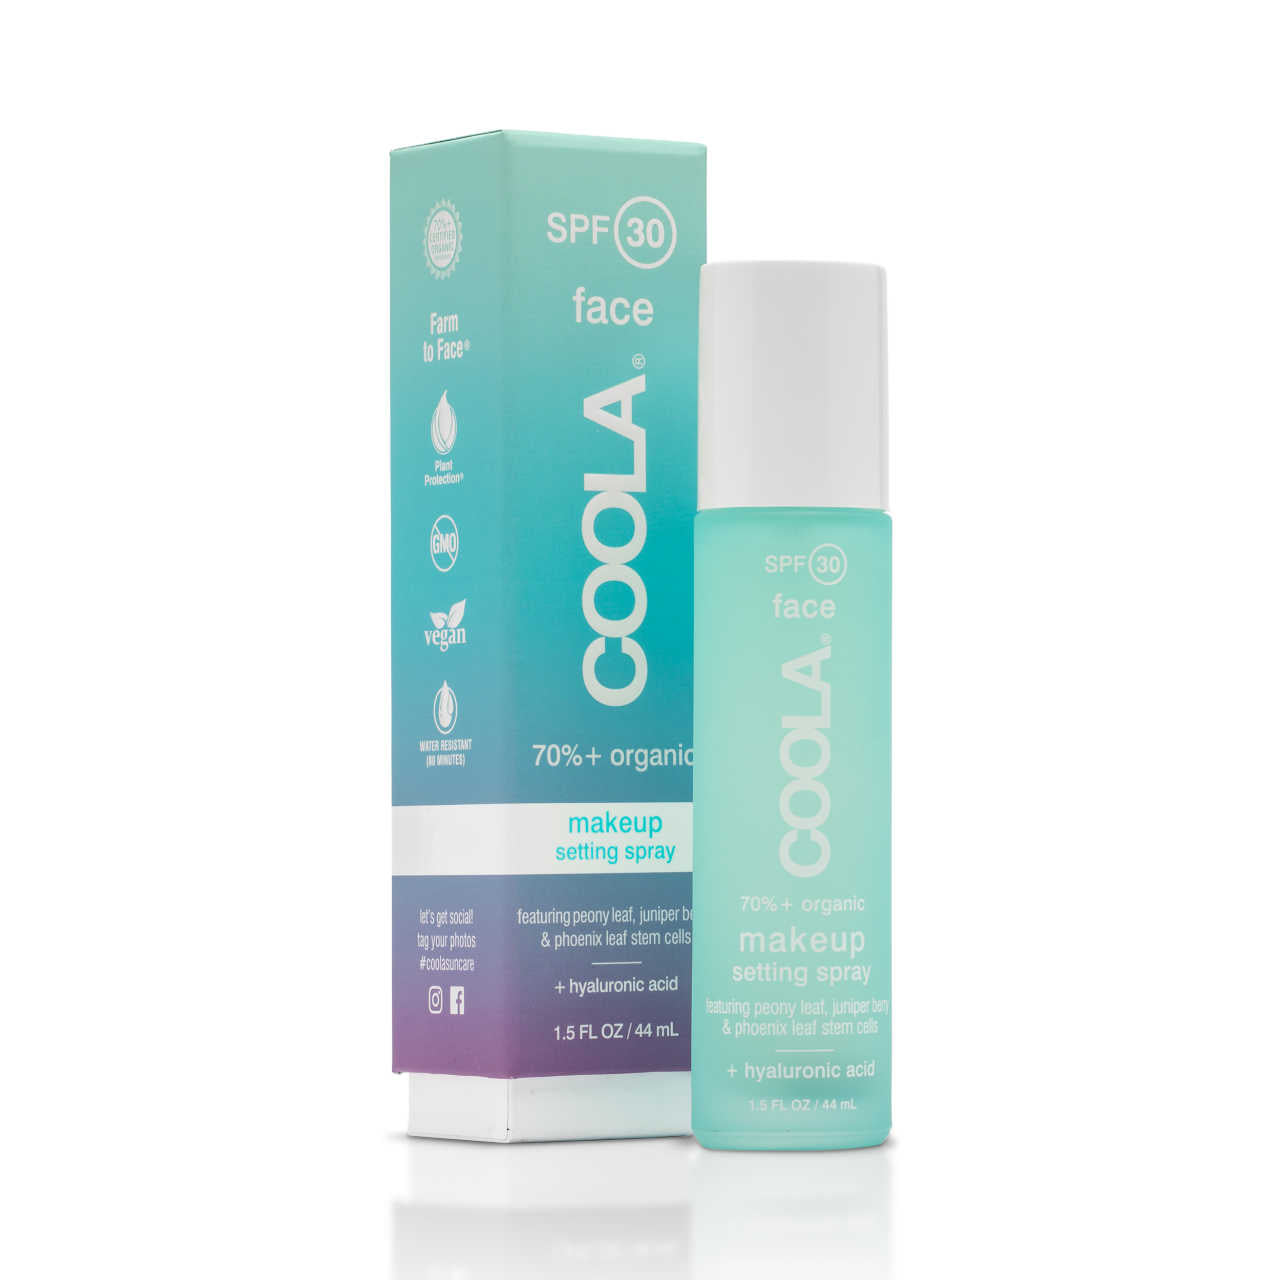 COOLA Classic Face SPF 30 Makeup Setting Spray - Organic